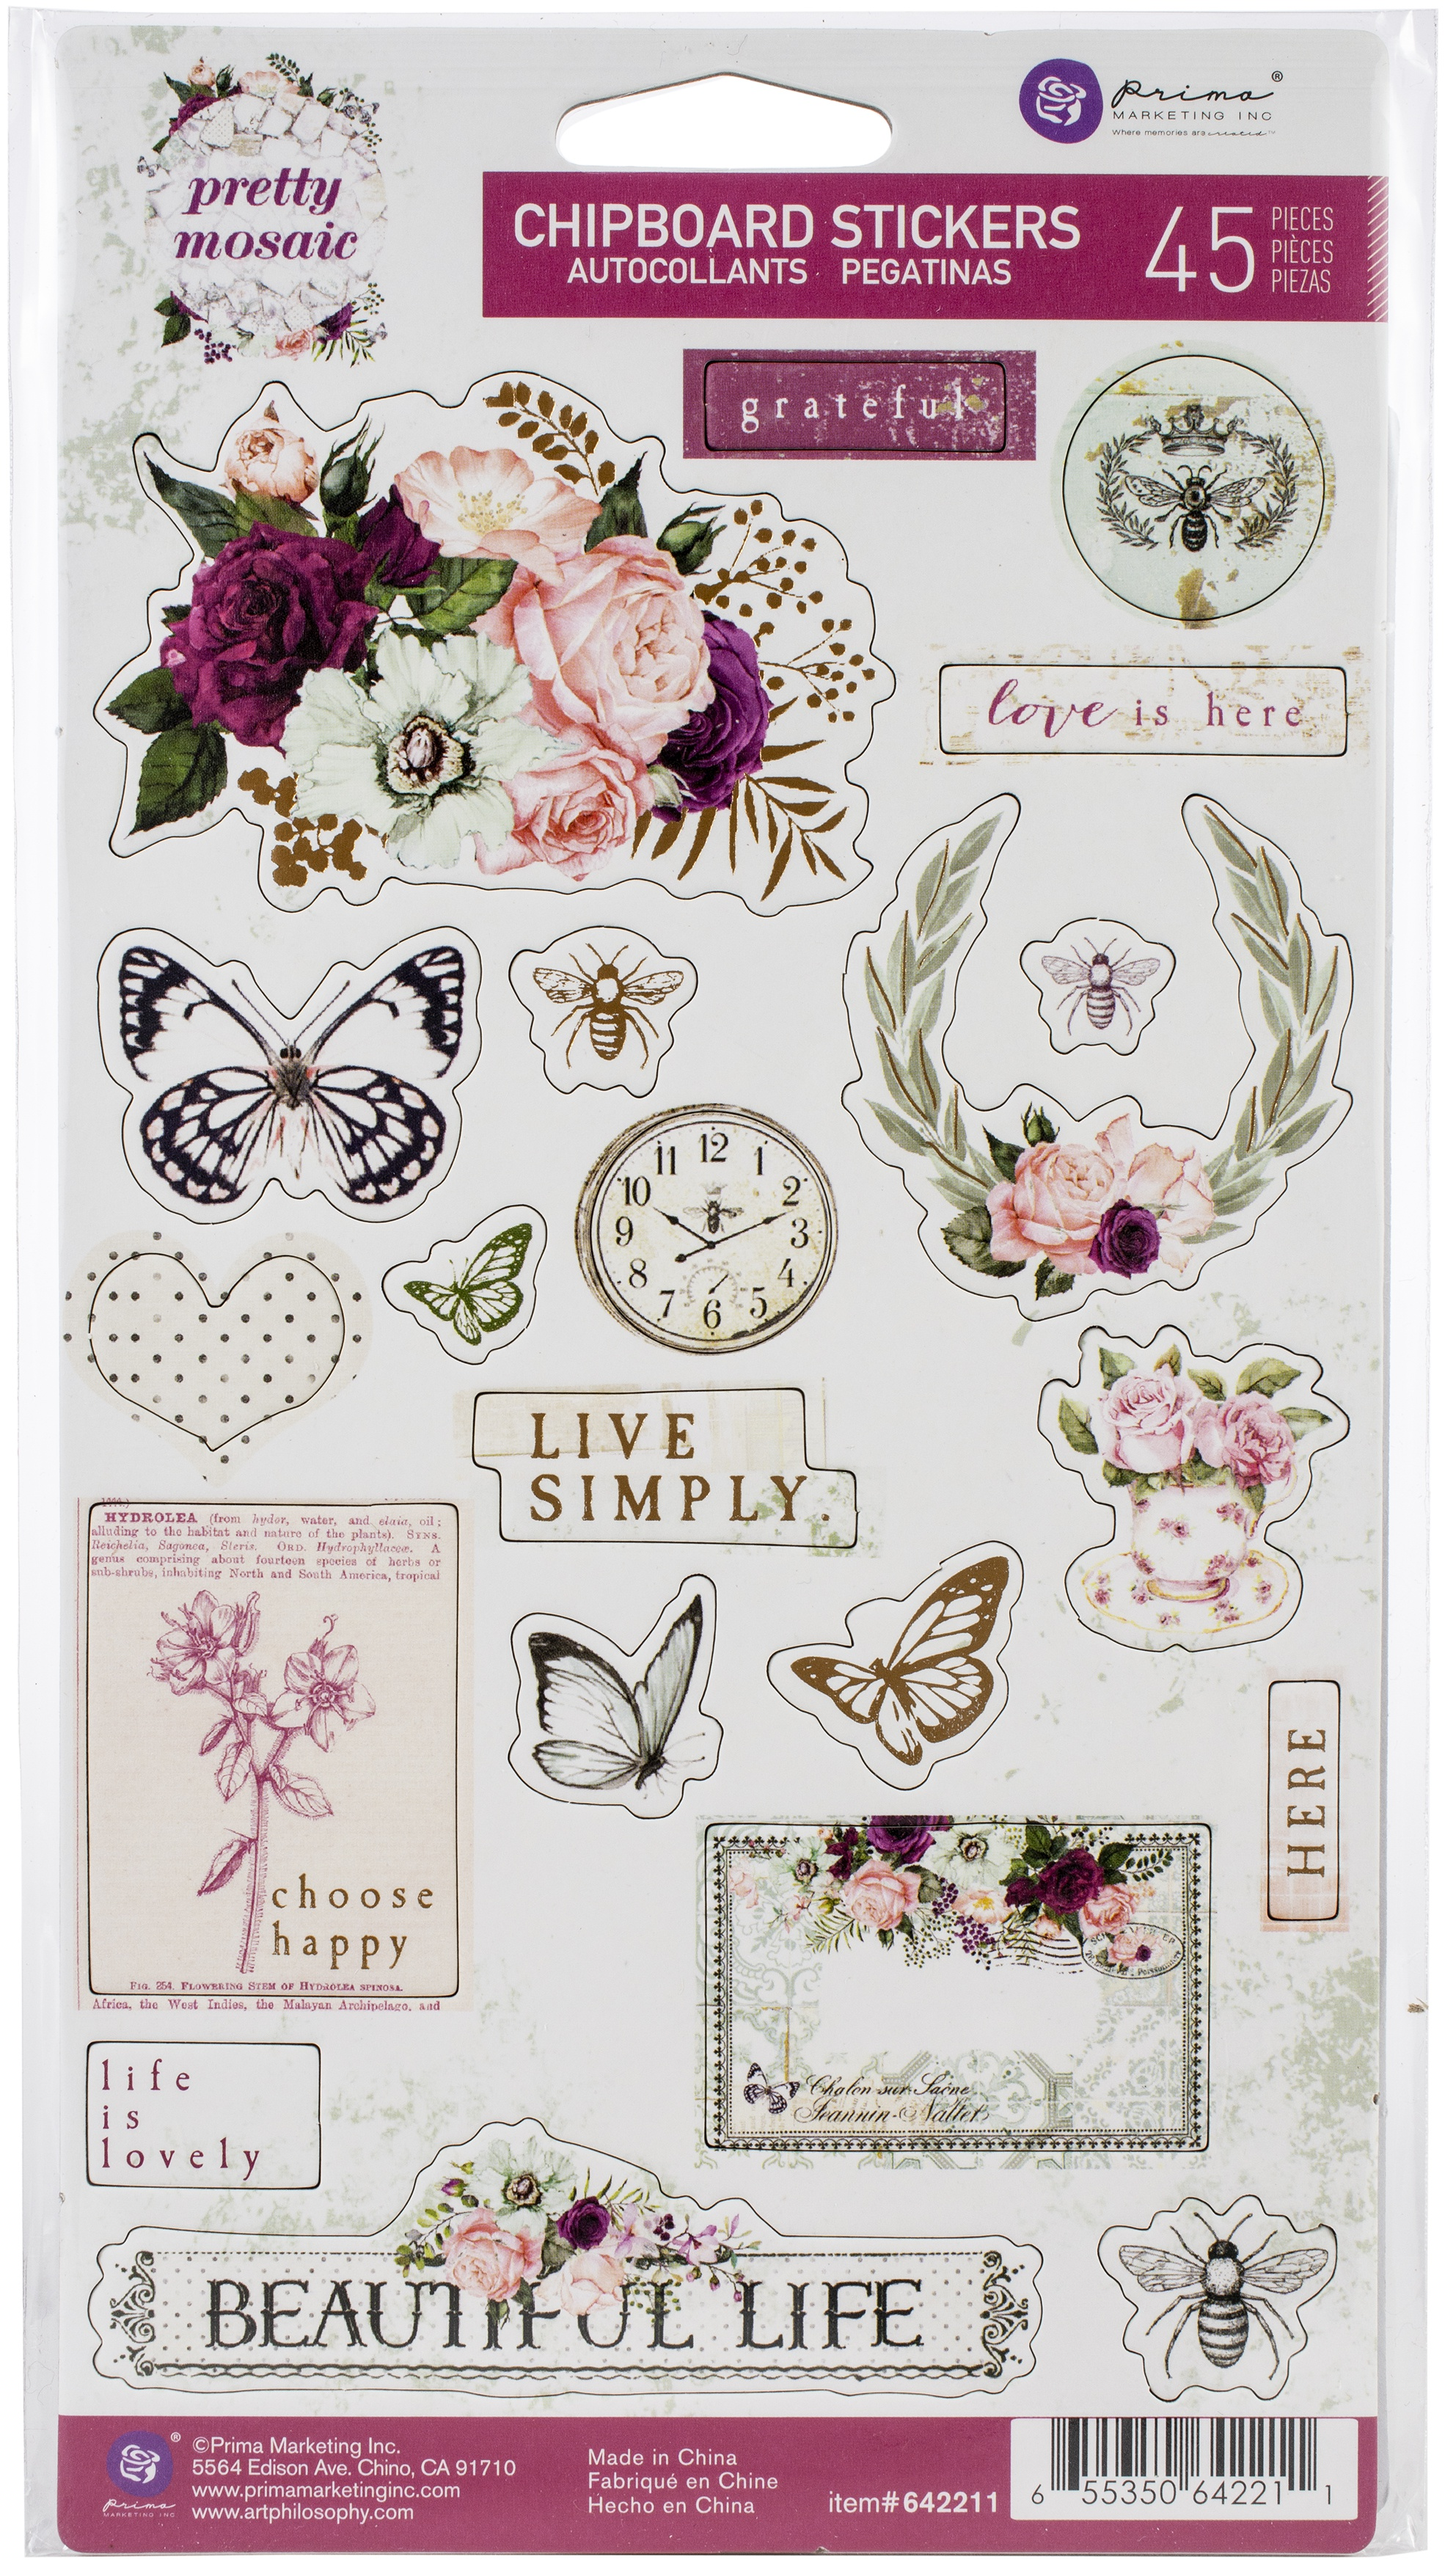 Pretty Mosaic Chipboard Stickers 45/Pkg-Icons W/Foil Accents